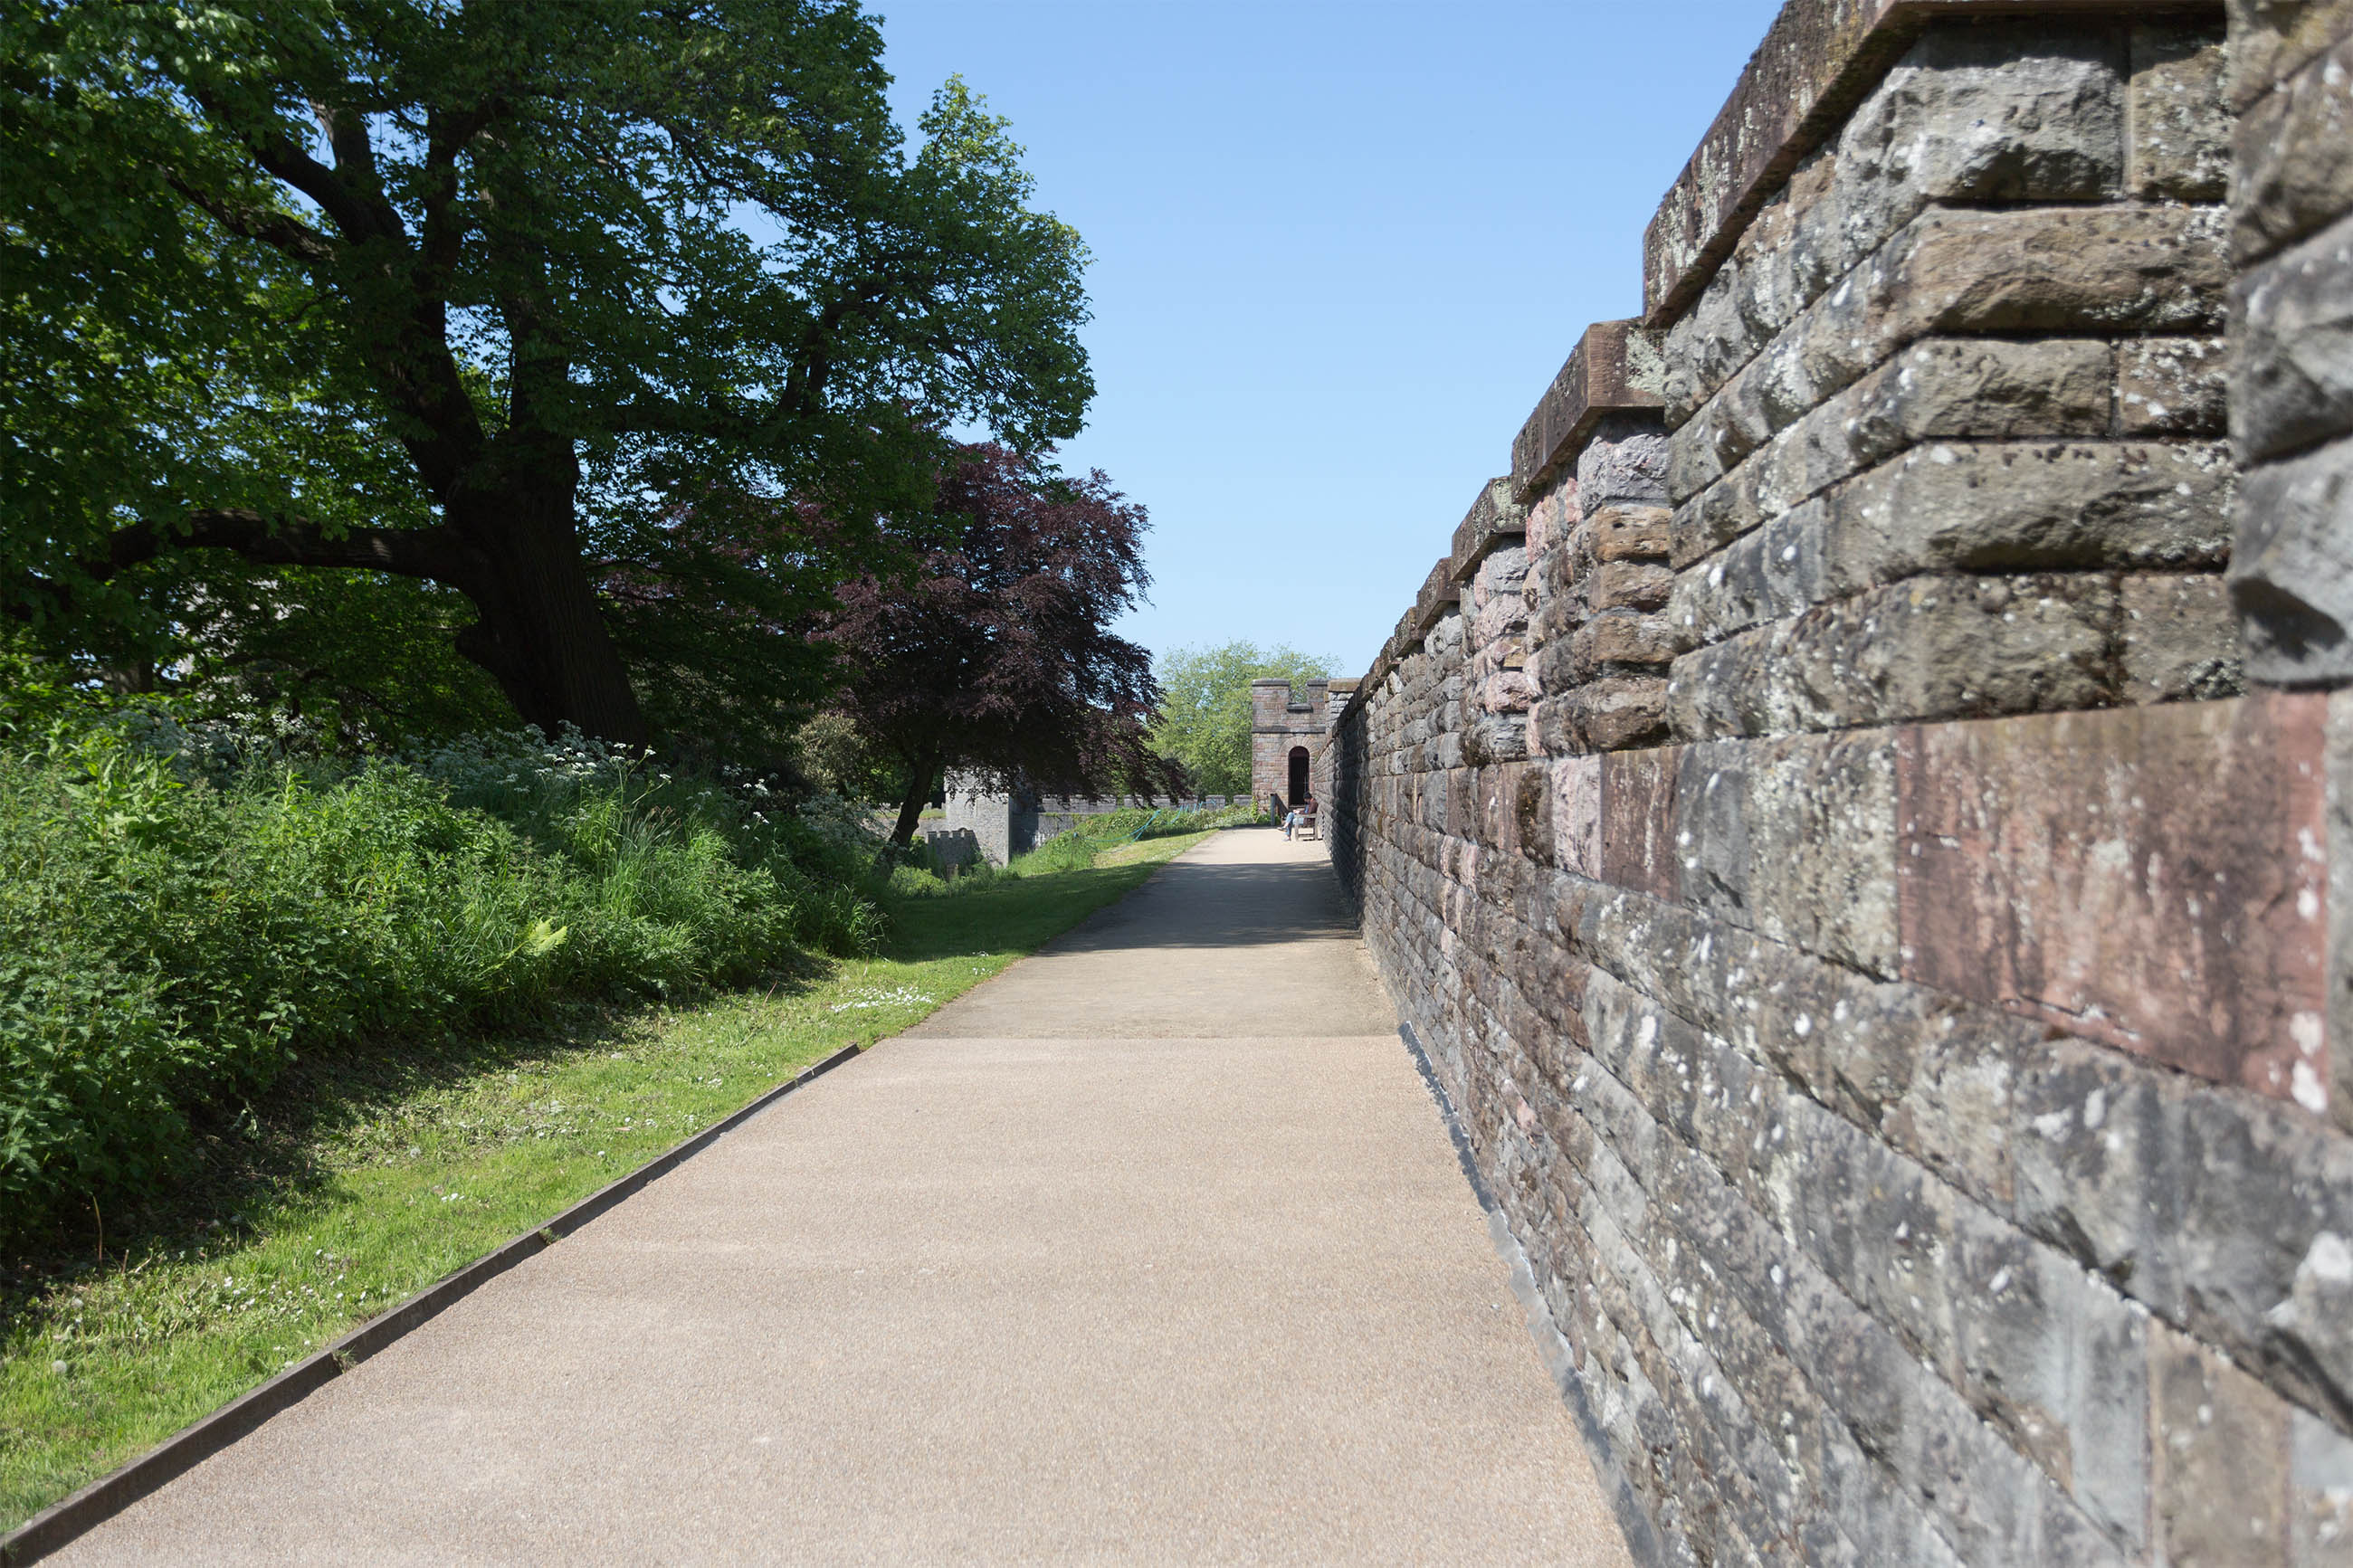 Cardiff Castle Walls, Ancient, Sightseeing, Military, National, HQ Photo